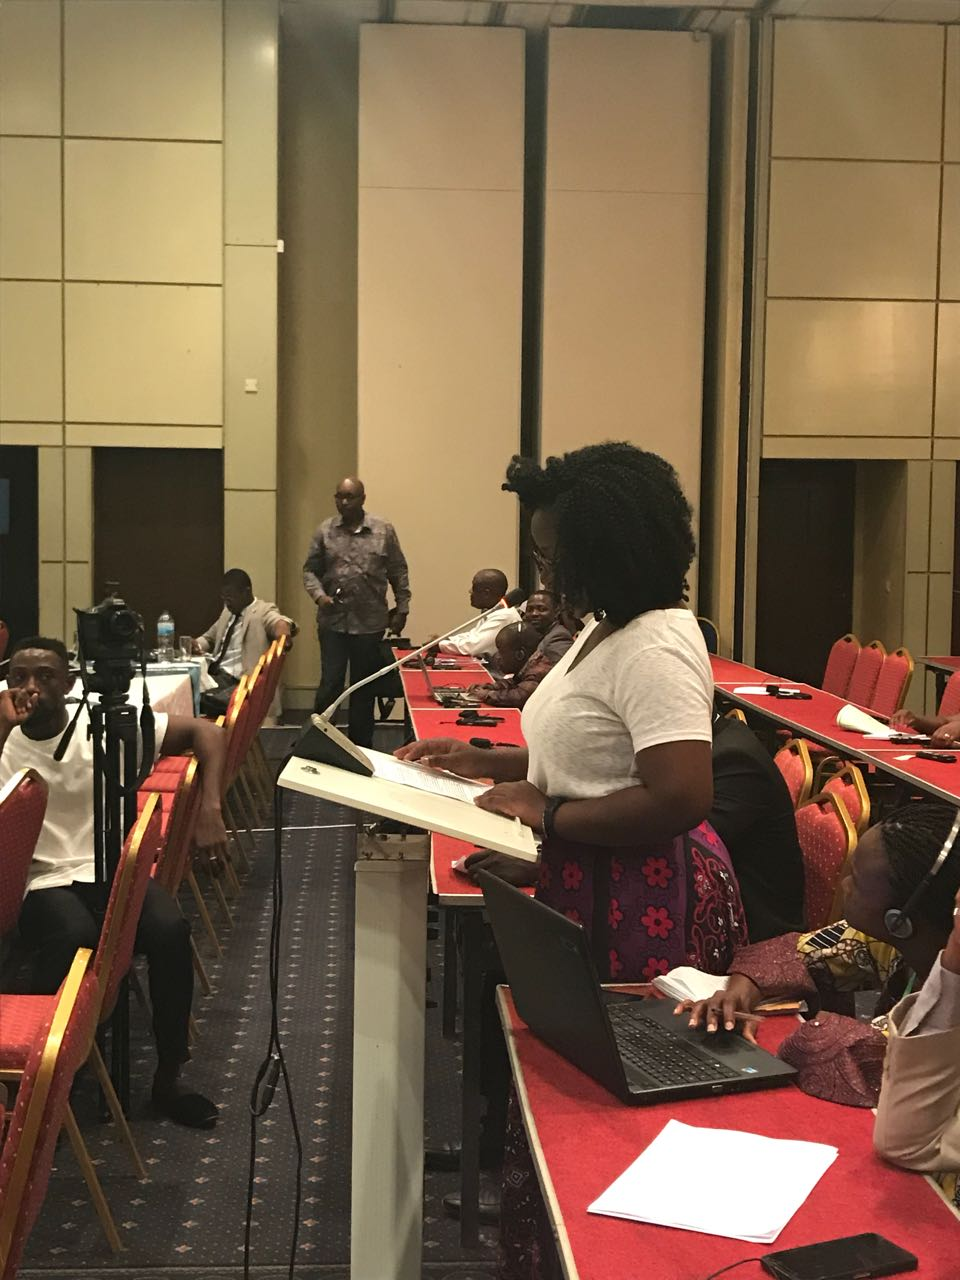 Joint Statement To The 61st Session Of The African Commission On Human And Peoples' Rights In Response To The Report By The Special Rapporteur On The Rights Of Human Rights Defenders In Africa